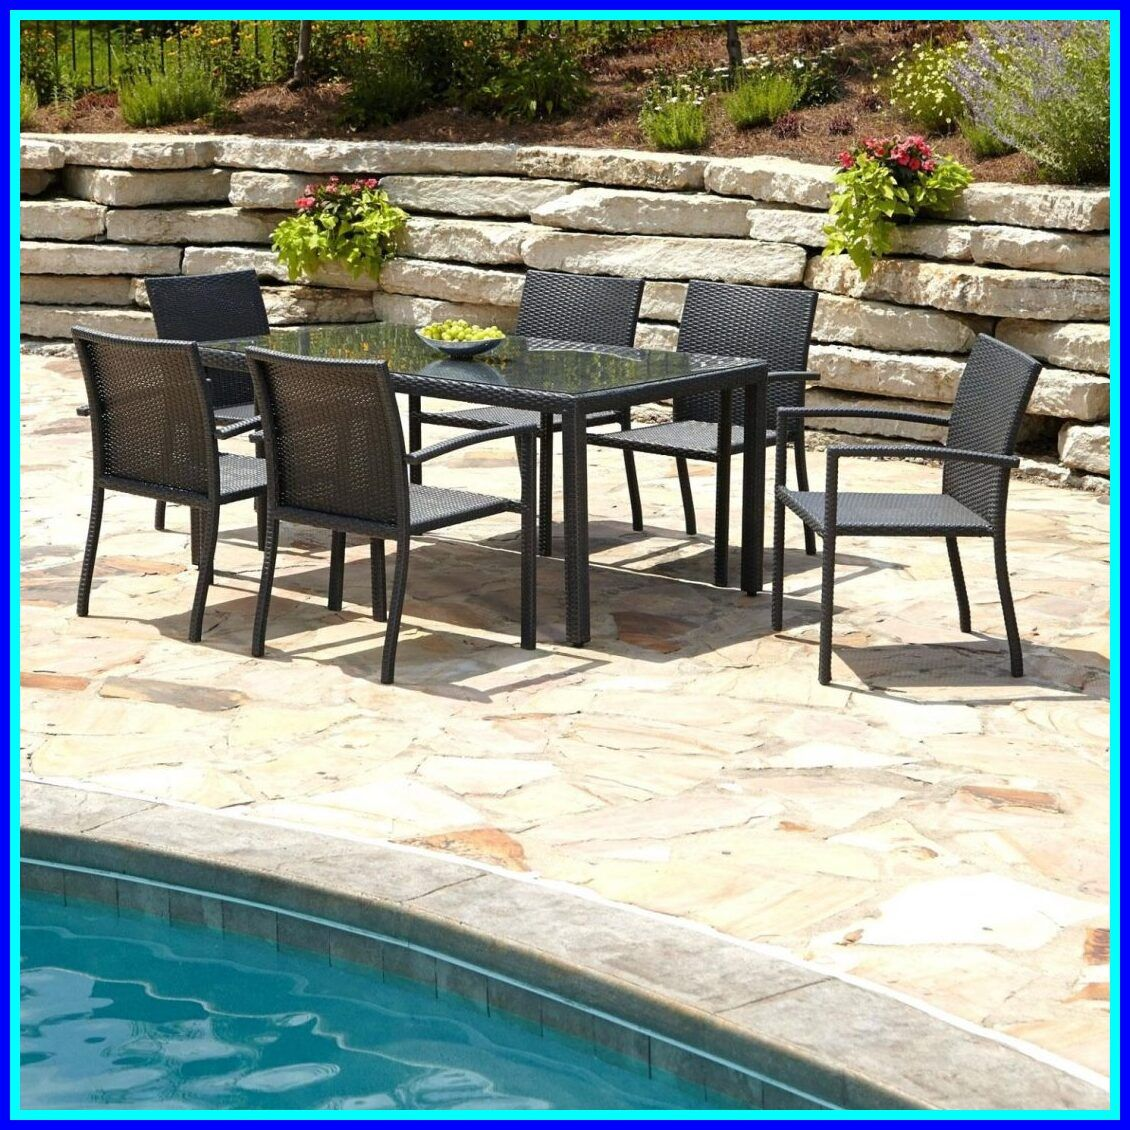 37 Reference Of Patio Furniture Clearance Big Lots In 2020 Wicker Patio Furniture Sets Contemporary Patio Furniture Contemporary Patio